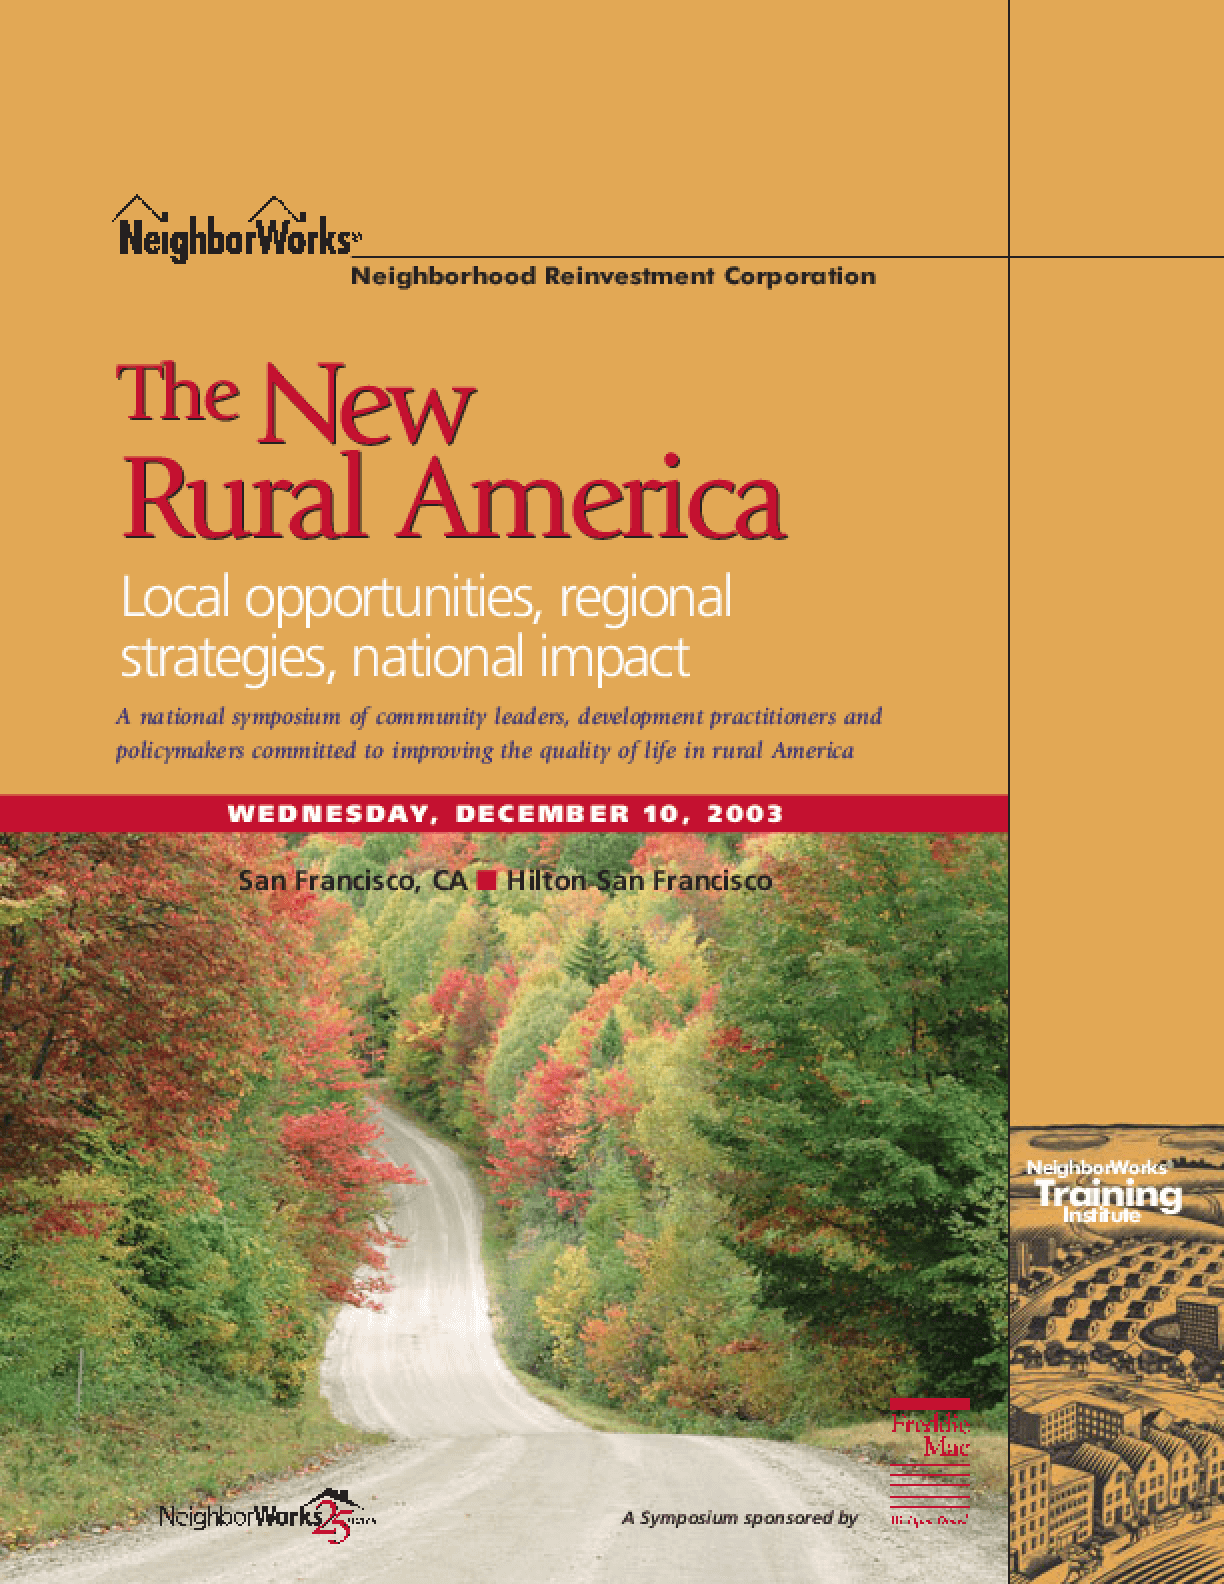 The New Rural America: Local Opportunities, Regional Strategies, National Impact